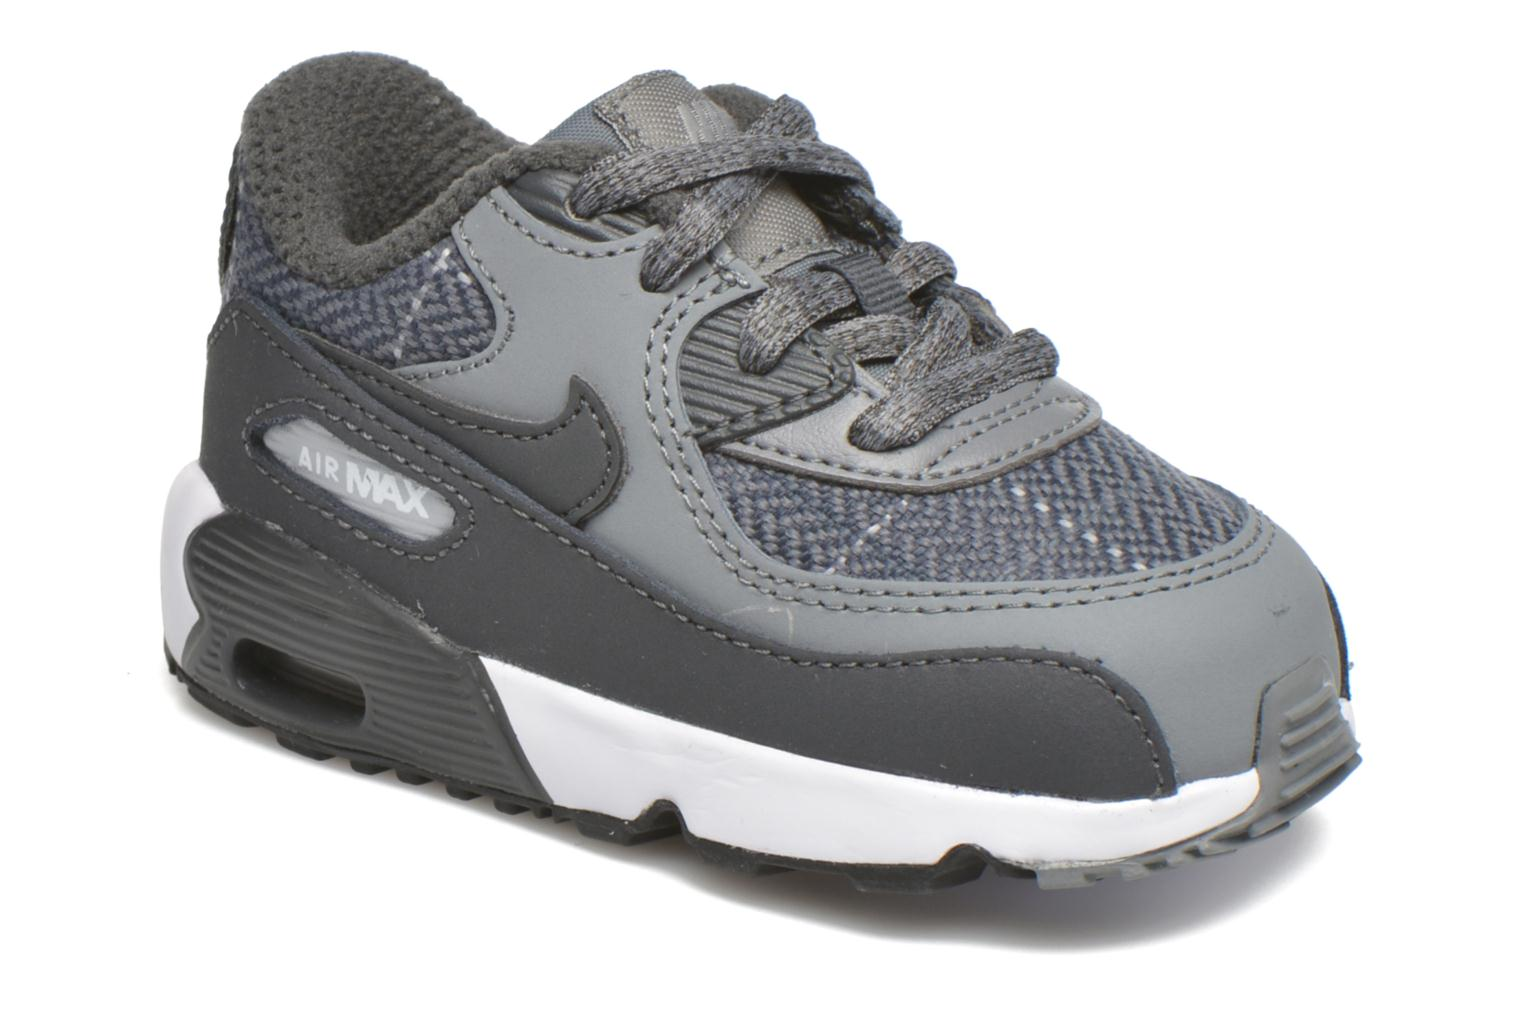 Nike Air Max 90 Se Ltr (Td) Cool Grey/Anthracite-Wolf Grey-White